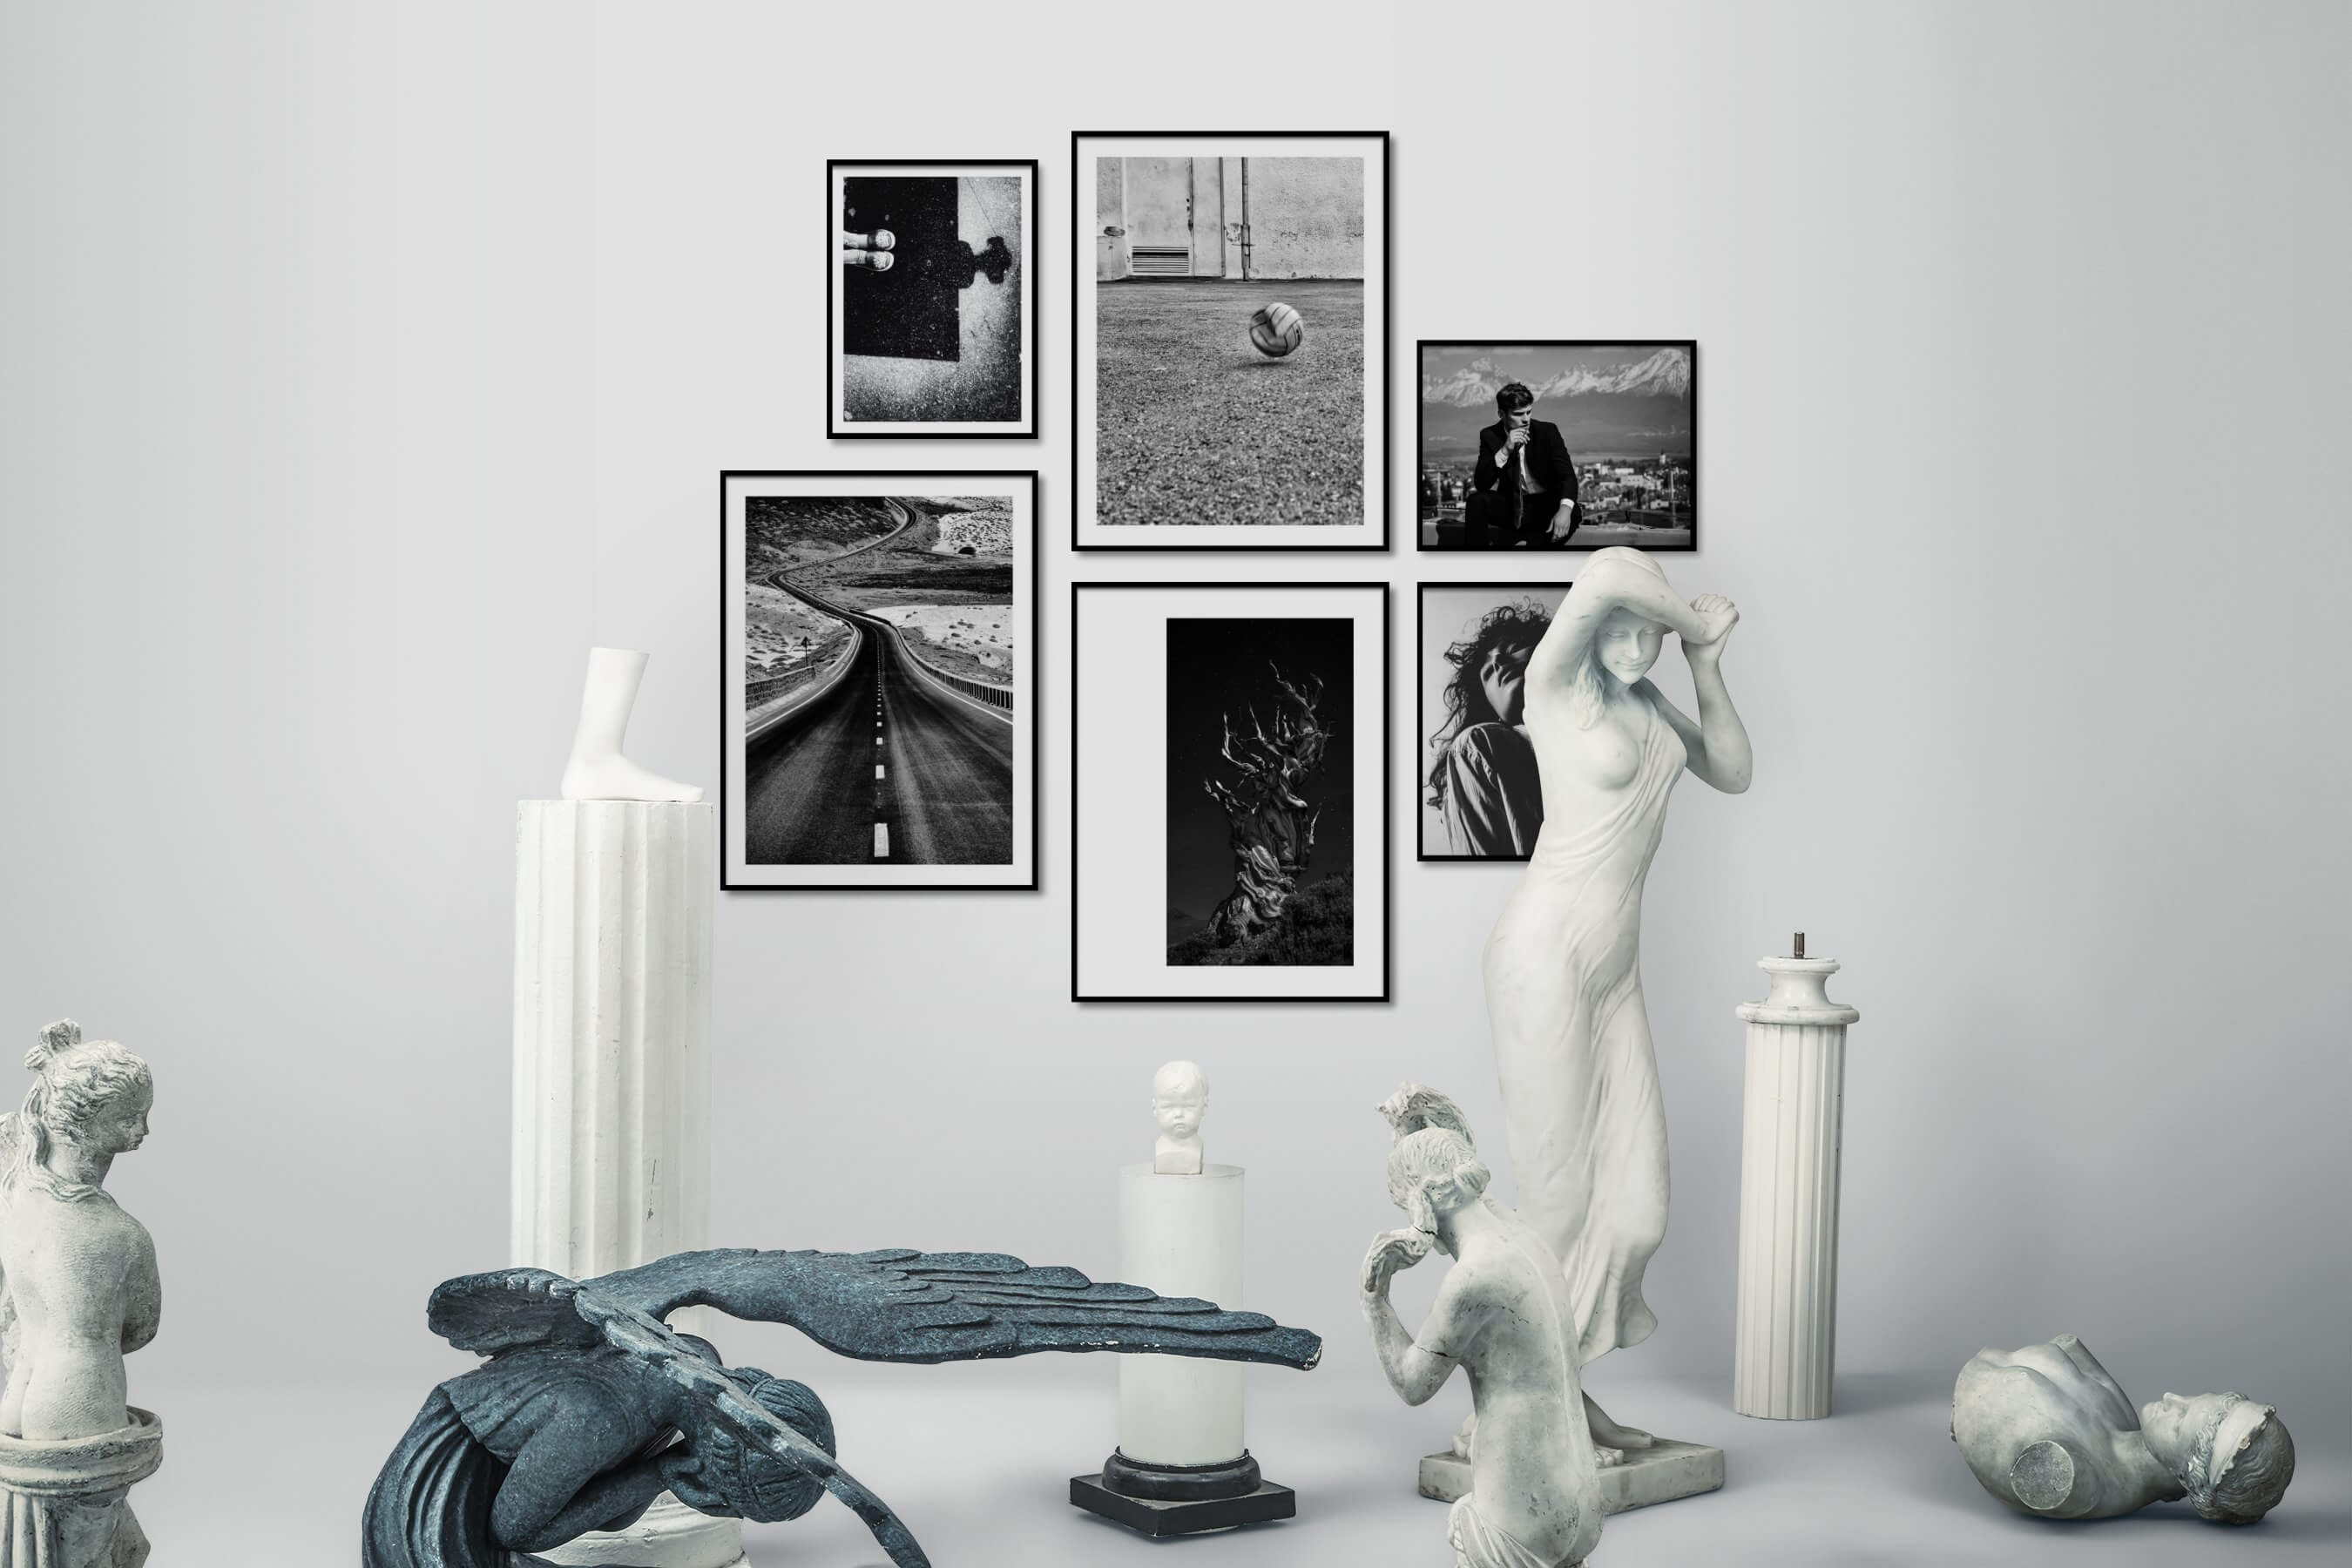 Gallery wall idea with six framed pictures arranged on a wall depicting Artsy, Black & White, City Life, For the Moderate, Country Life, Mindfulness, Nature, Fashion & Beauty, and Vintage